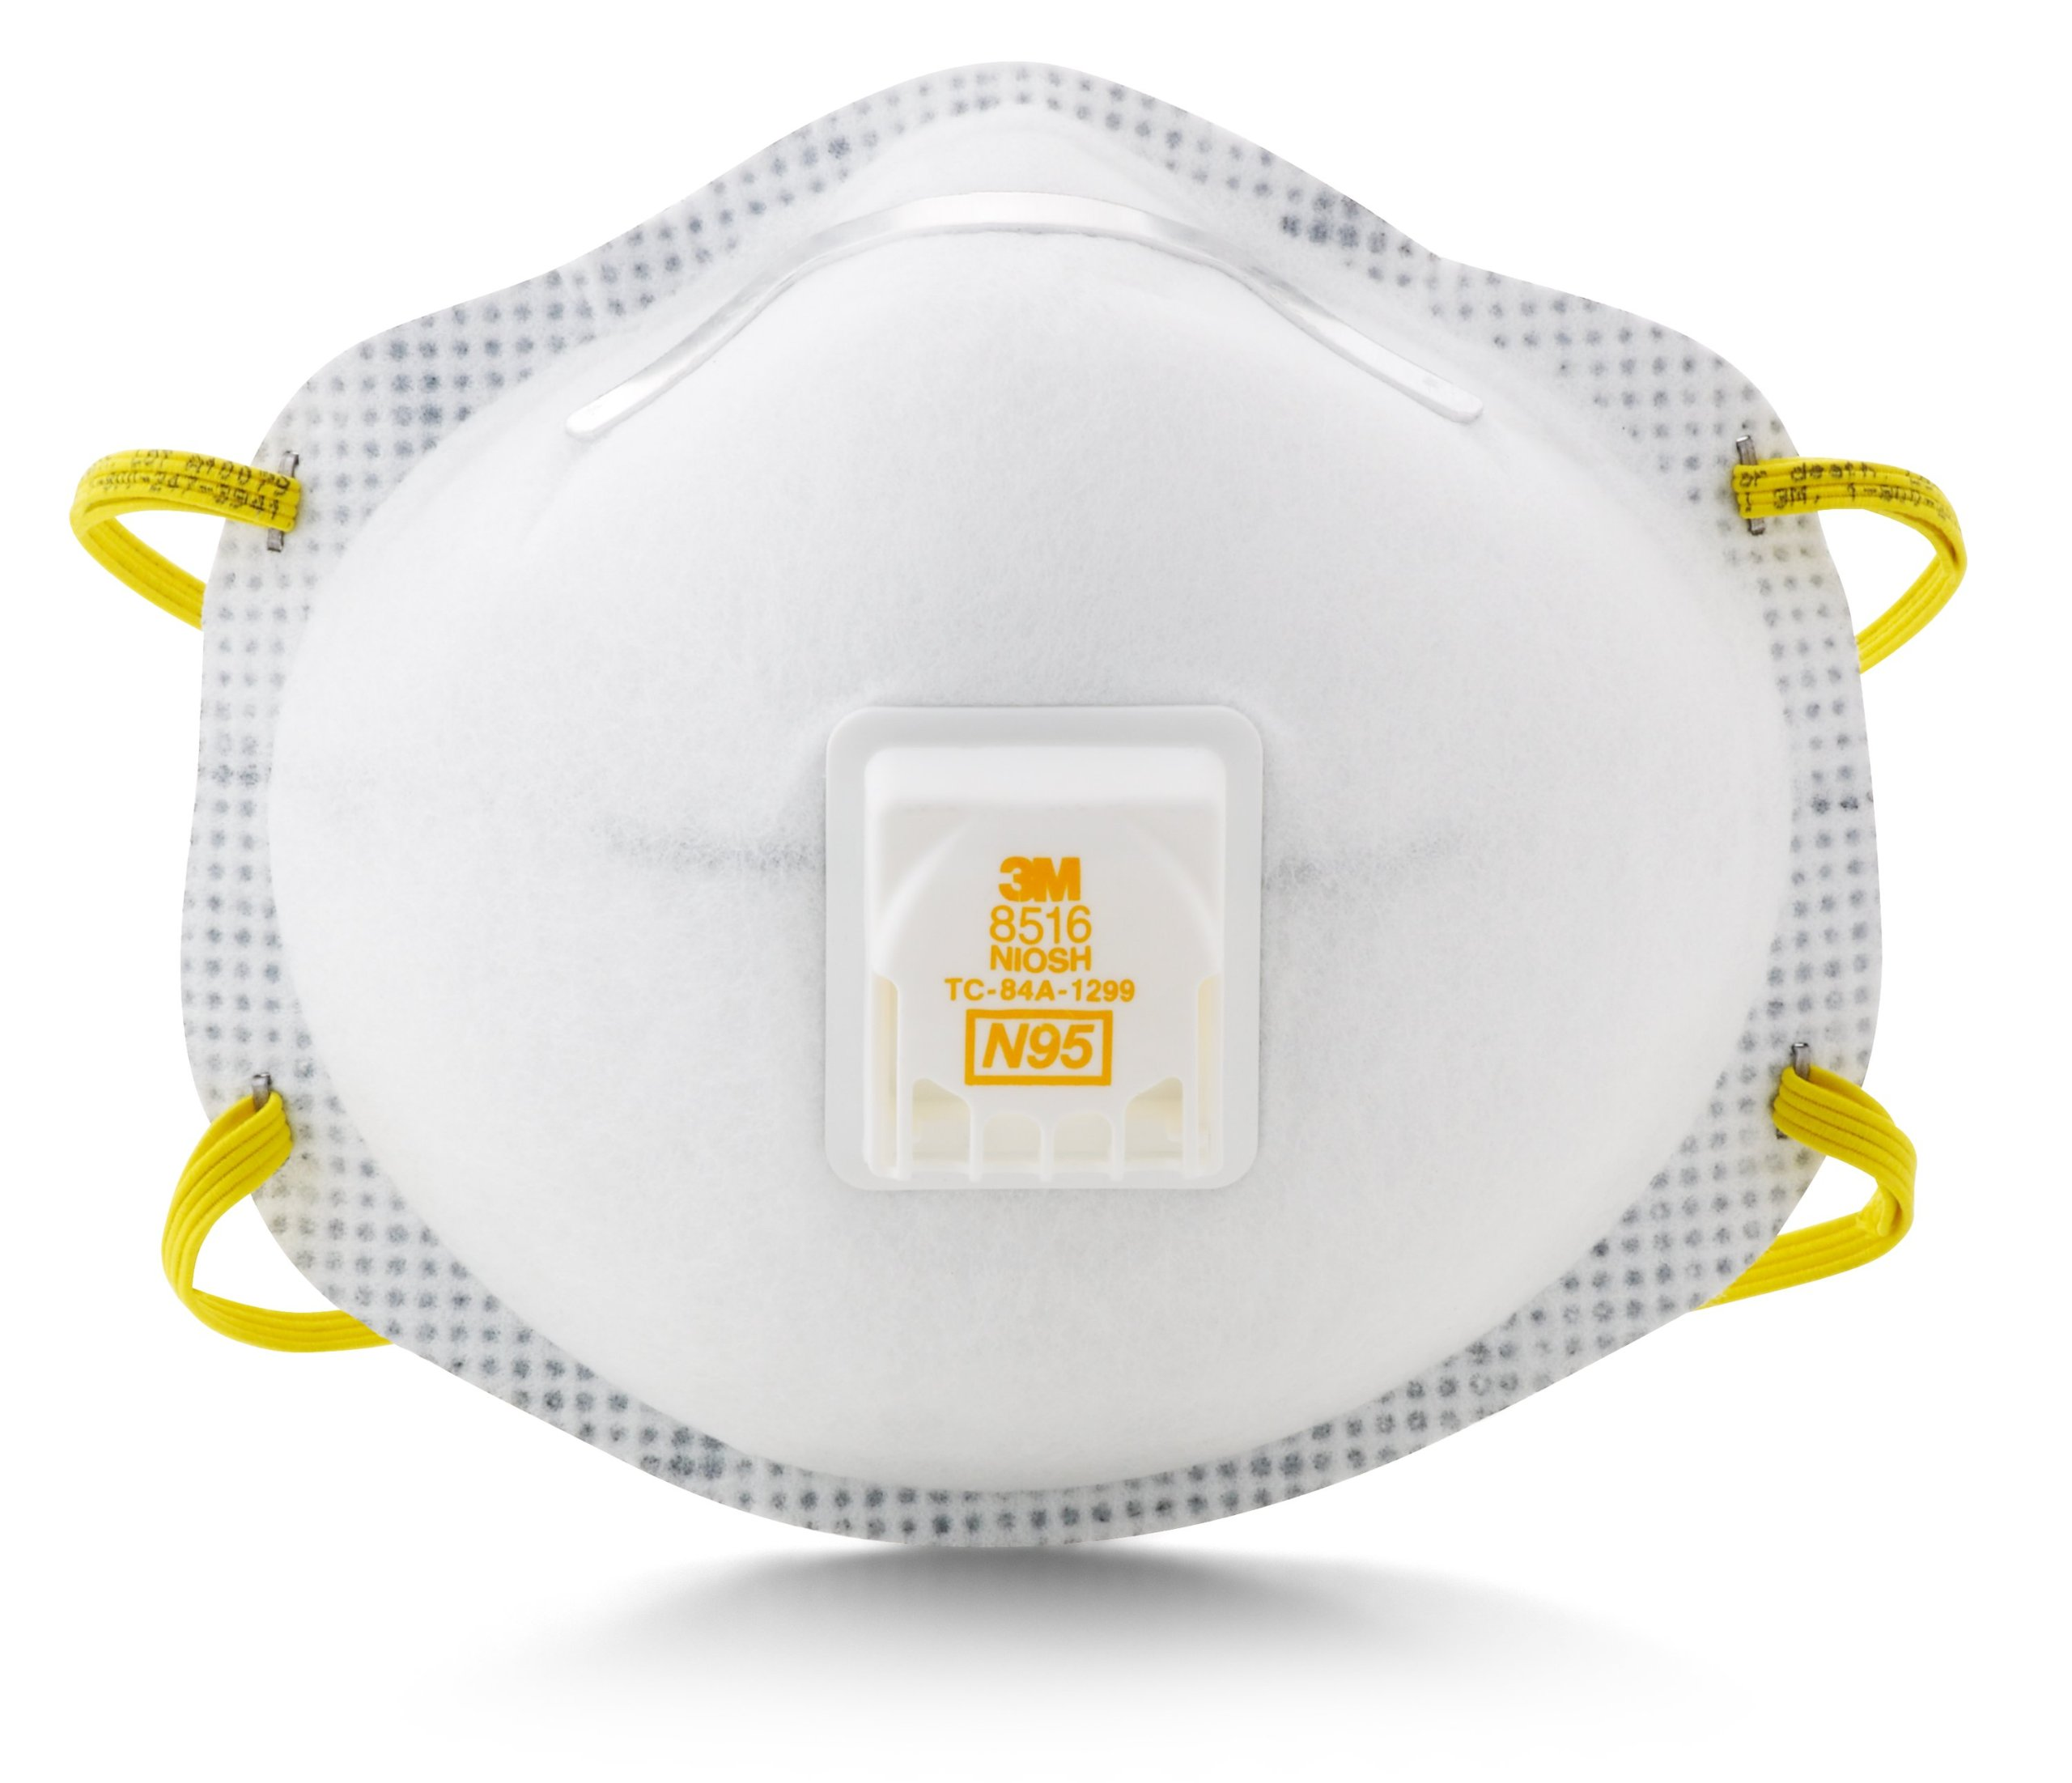 3M Particulate Respirator 8516, N95, with Nuisance Level Acid Gas Relief (Pack of 10) by 3M Personal Protective Equipment (Image #1)